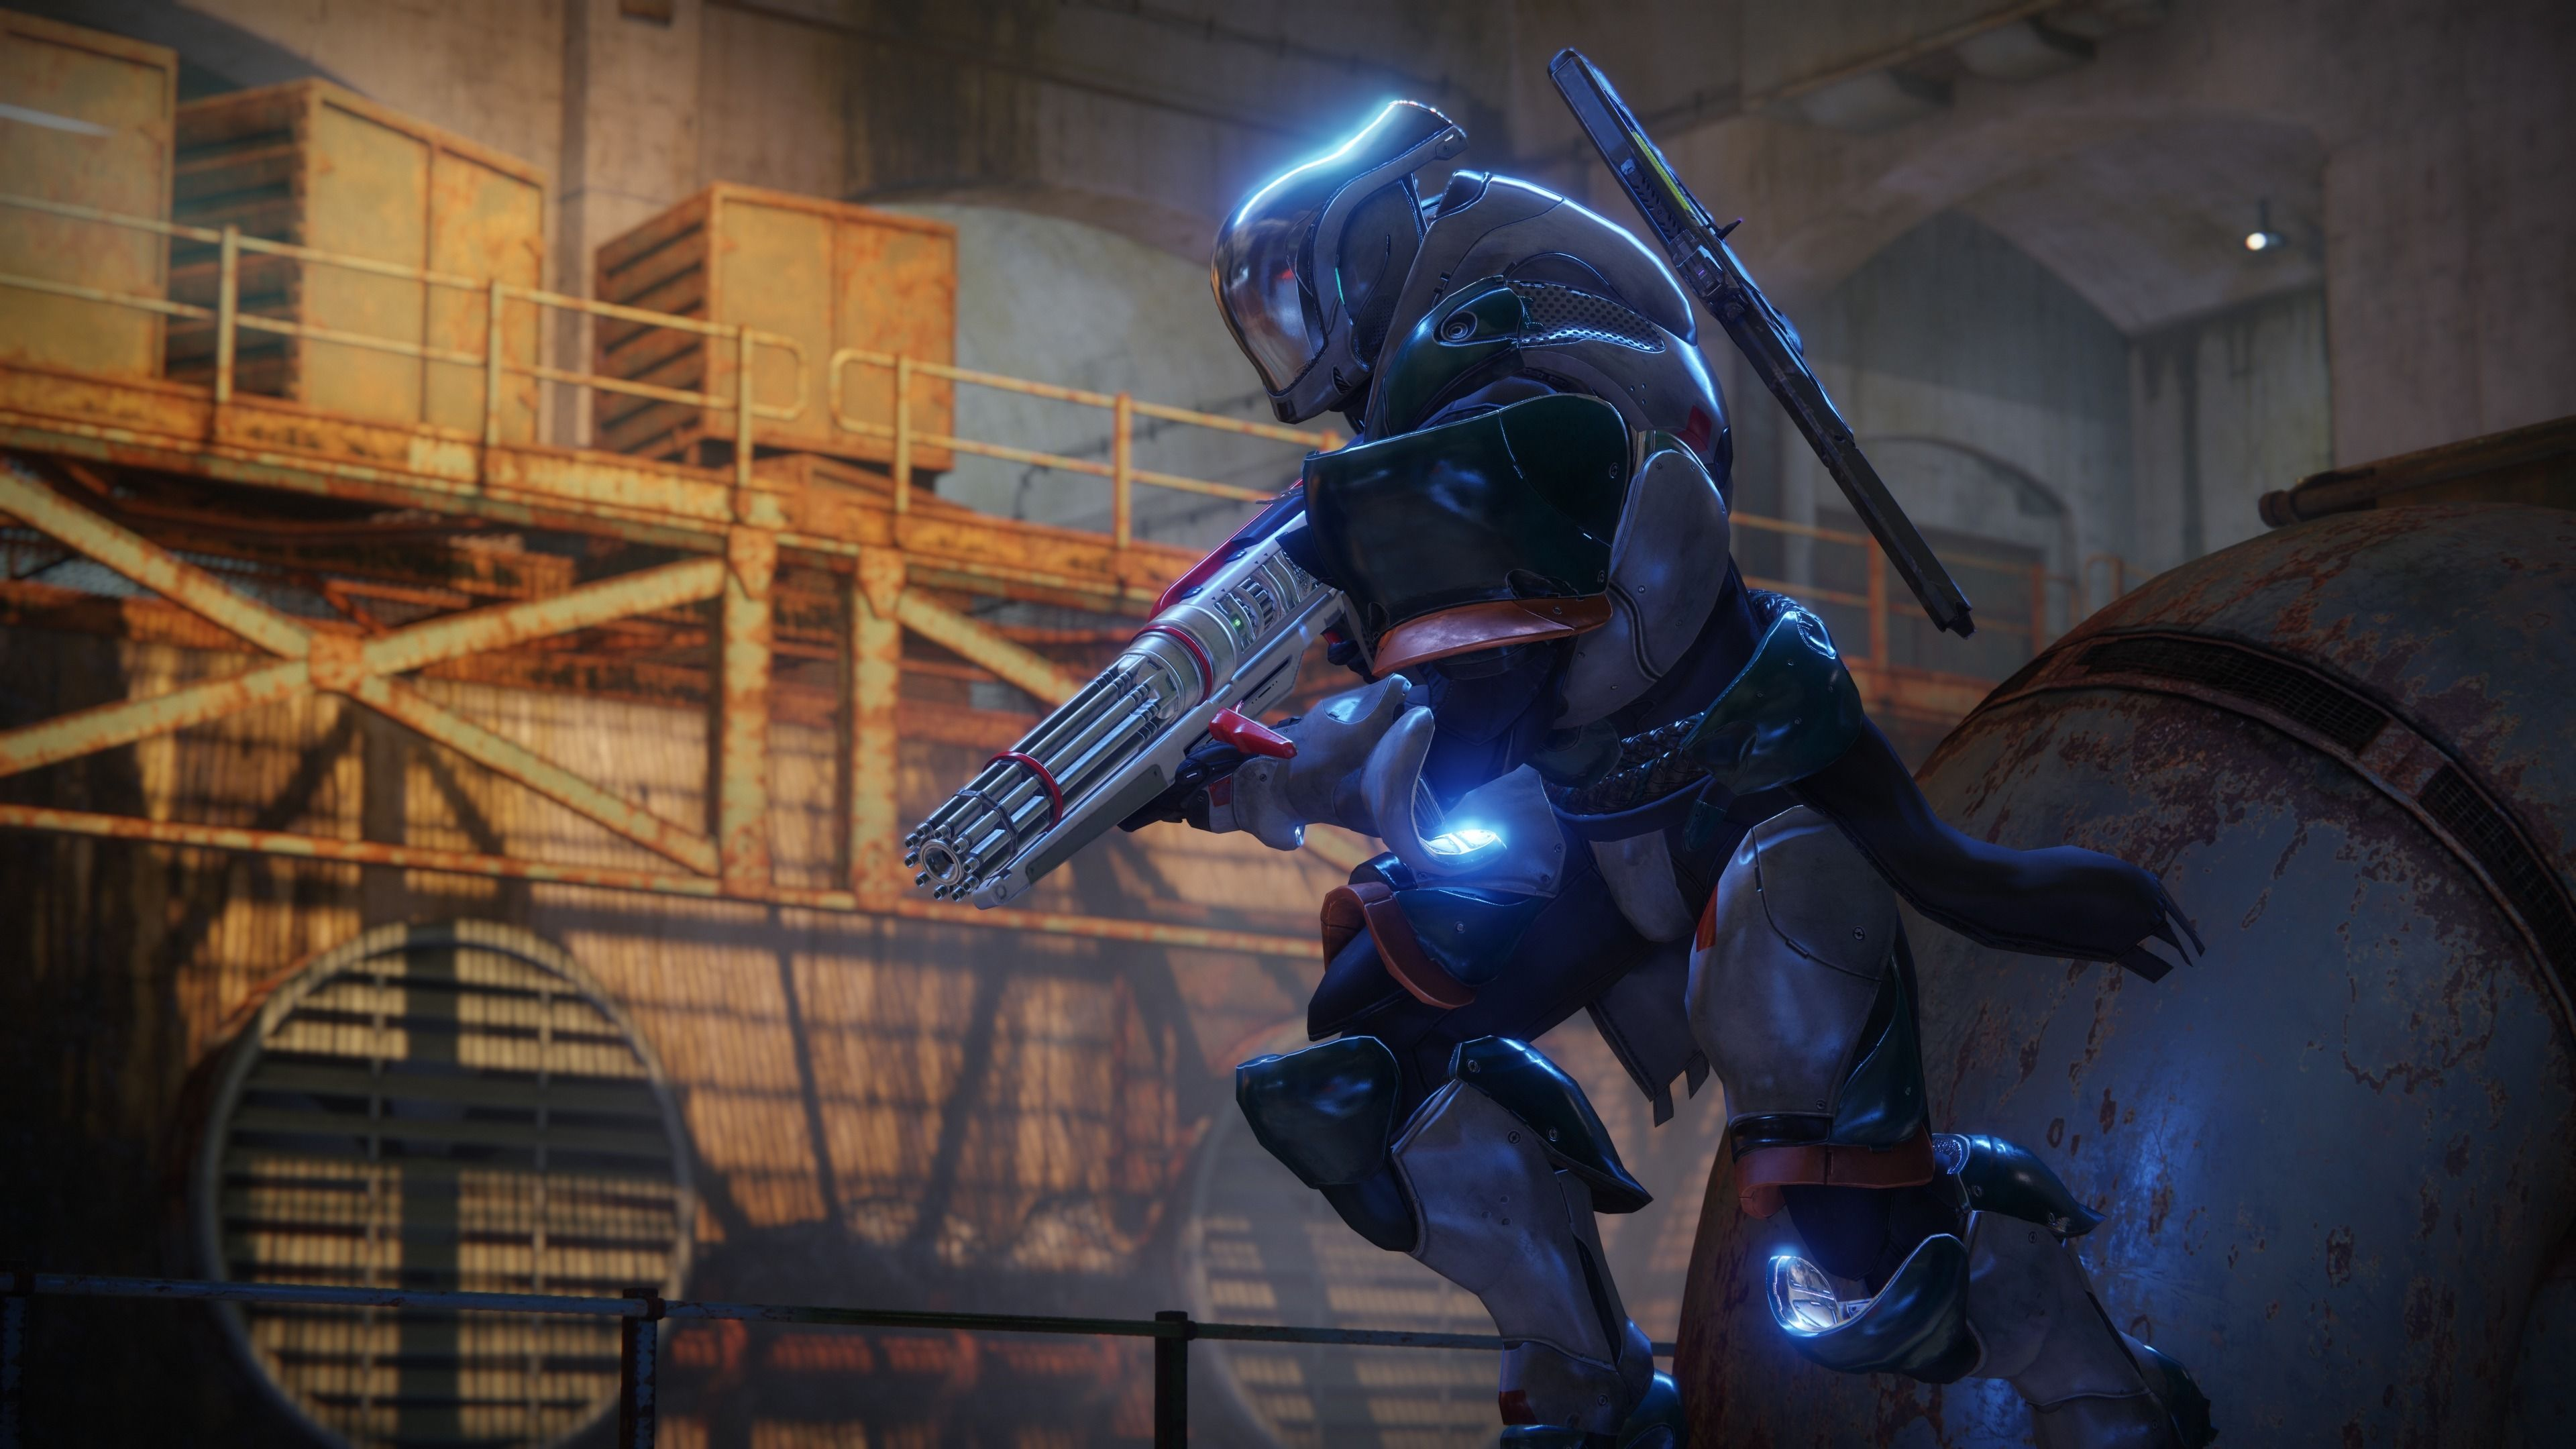 Destiny 2 Gameplay 4k Hd Wallpapers Hd Wallpapers4k Wallpapers Games Wallpapers Destiny Wallpapers Destiny 2 Wallpapers Destiny Heroic Titans